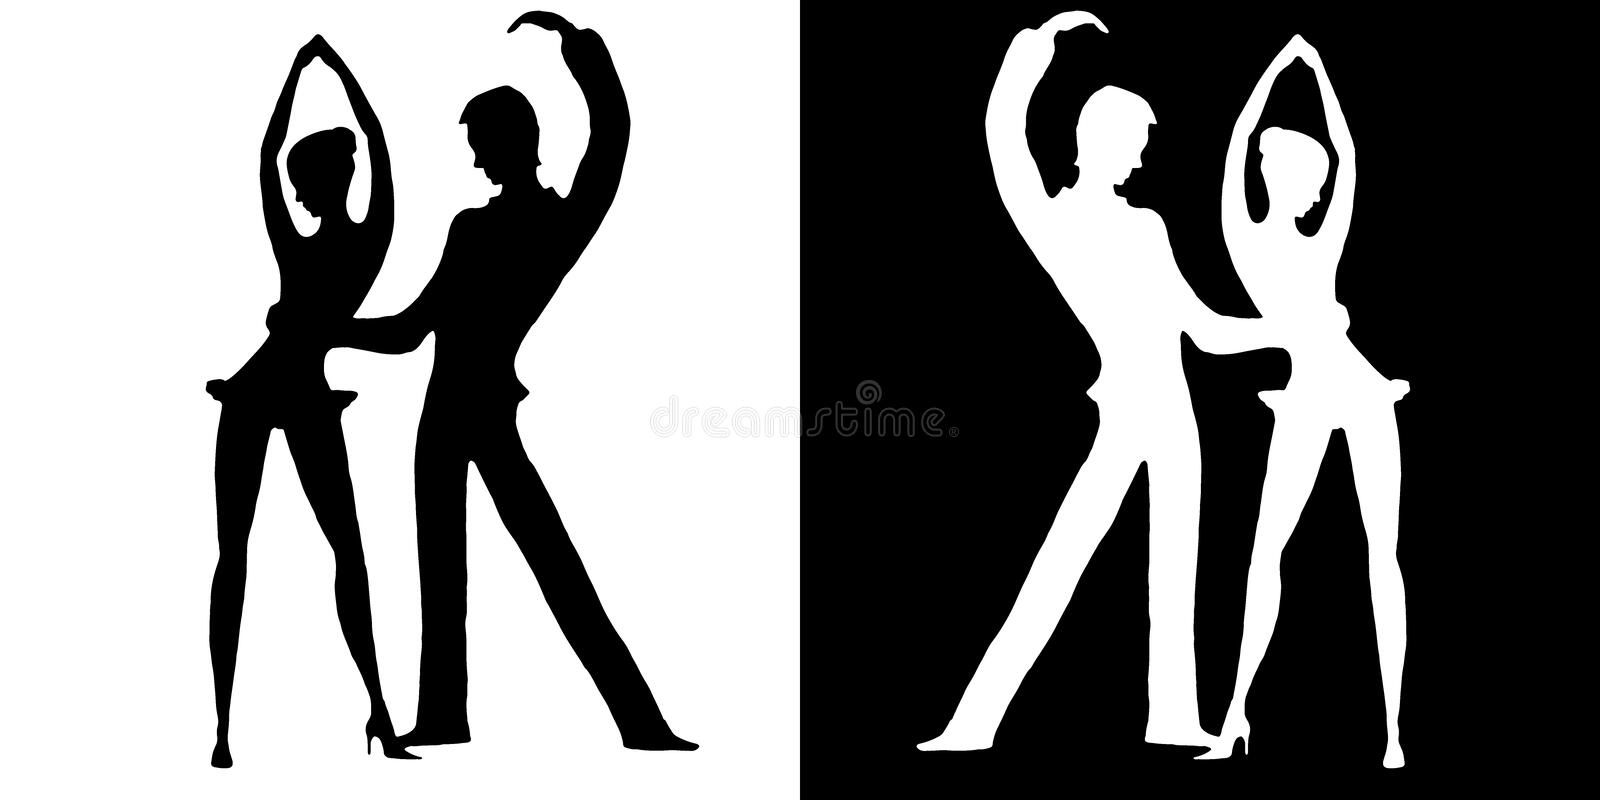 Silhouettes of dancers on white and on a black background royalty free illustration